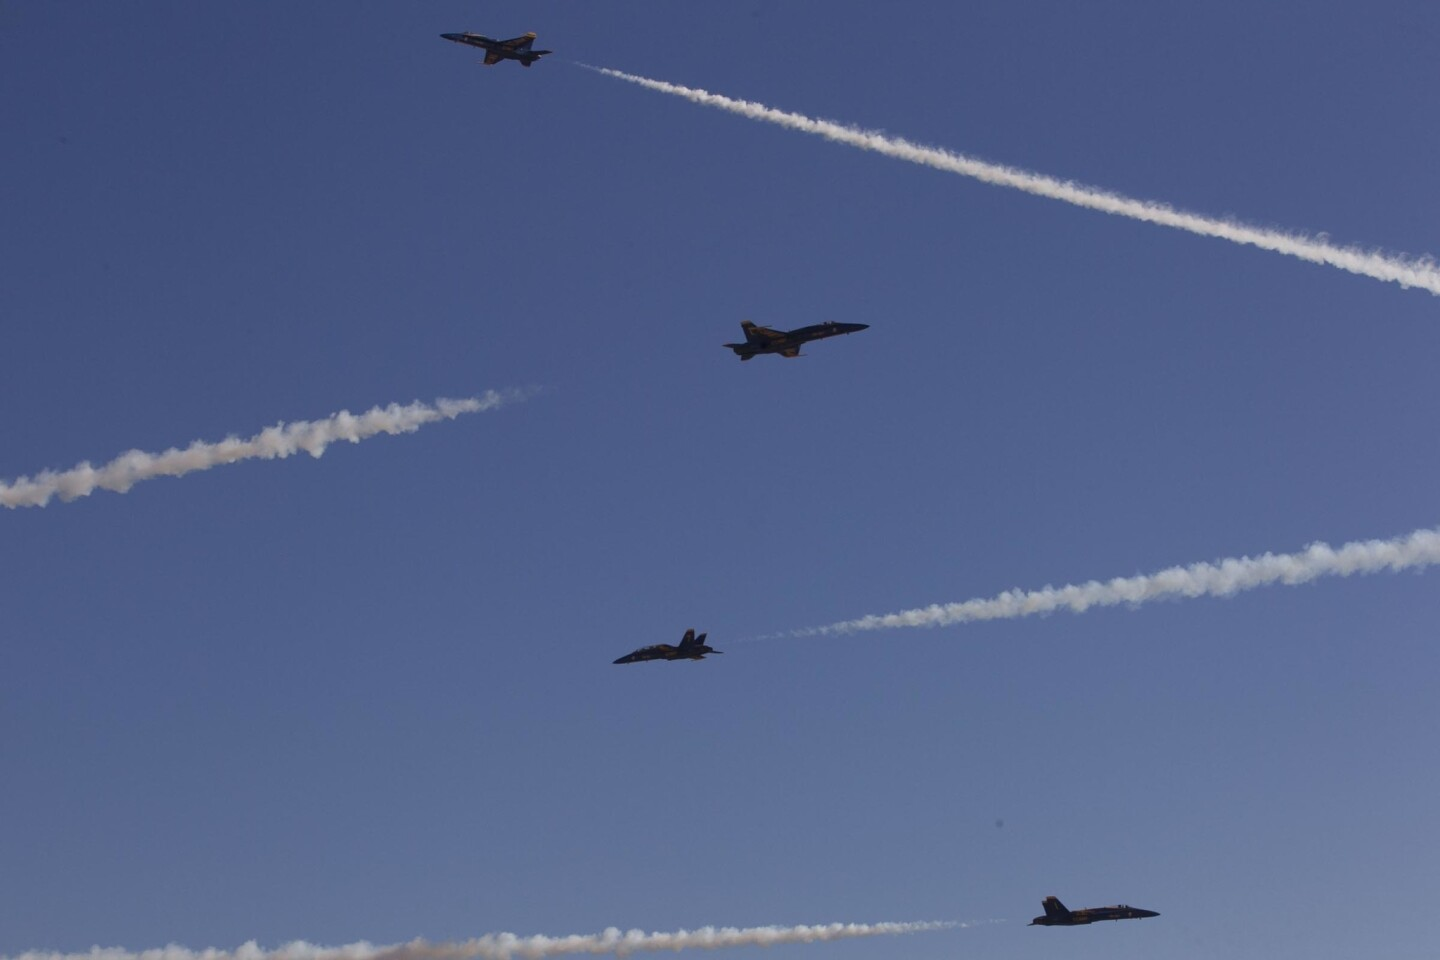 Always a popular part of the show, The Blue Angels took to the air in the afternoon on the first day of the three-day Miramar Air Show at Marine Corps air base Miramar.